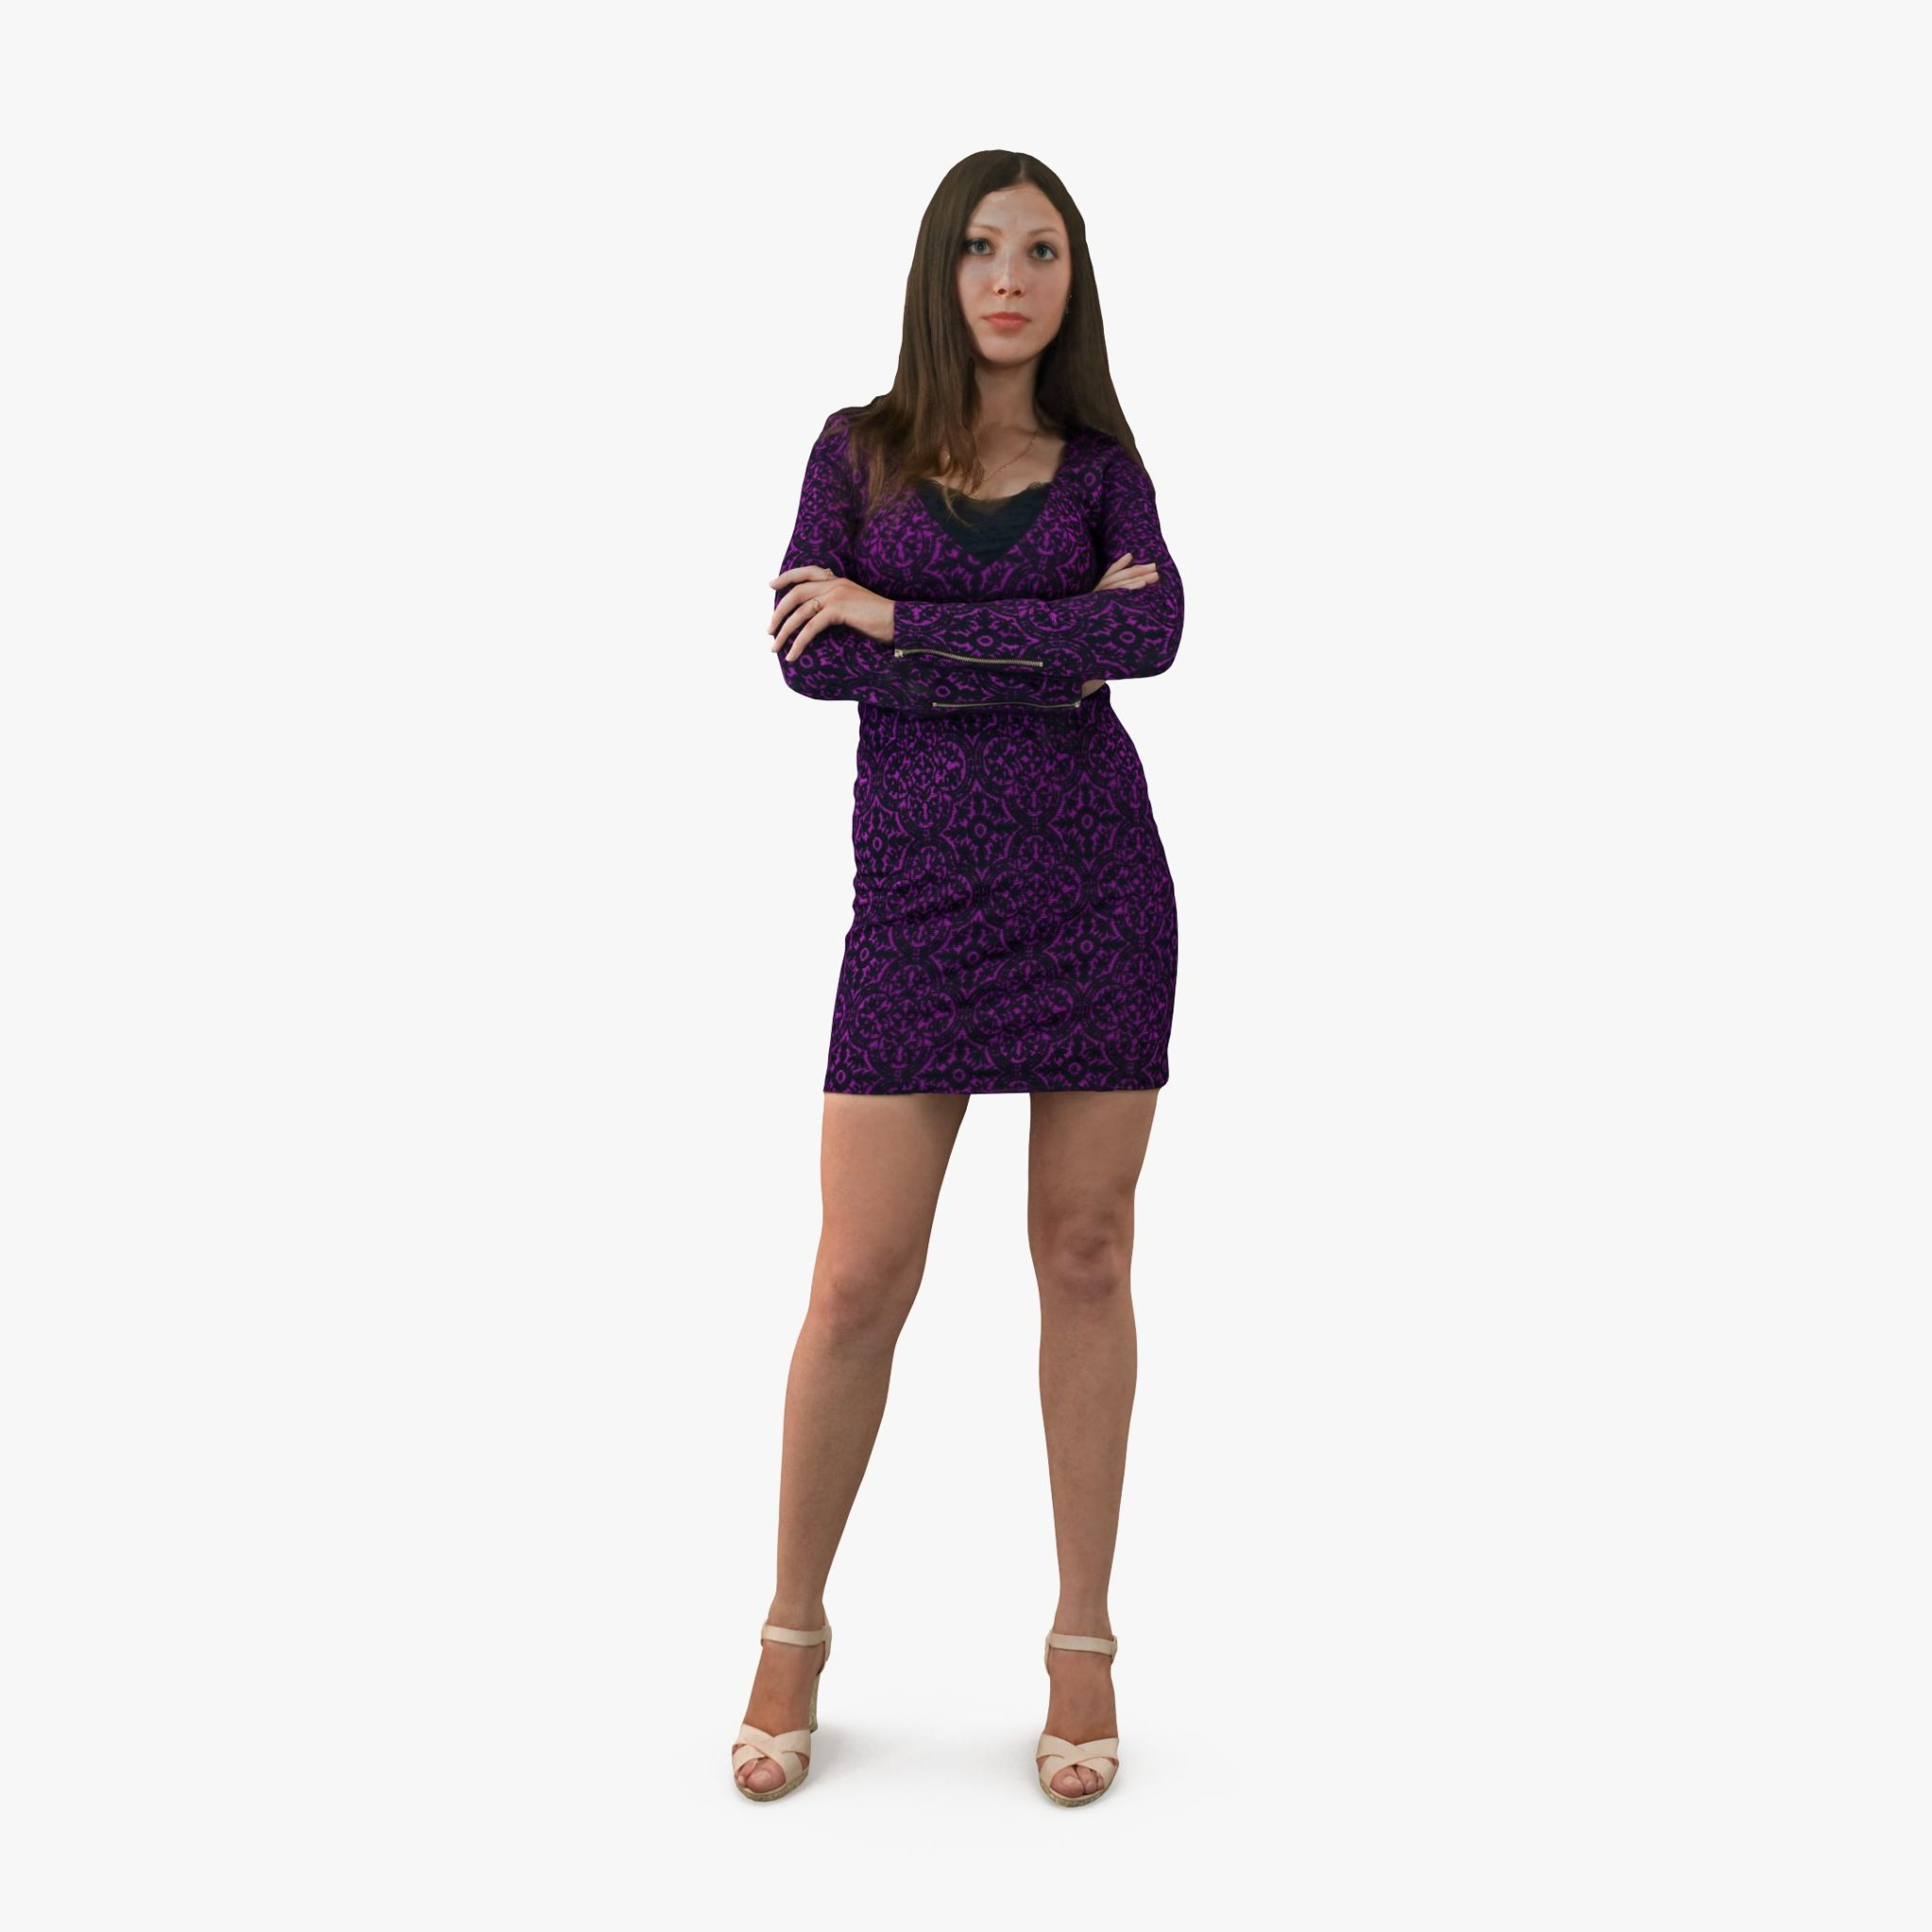 City Woman Casual Dress 3D Model | 3DTree Scanning Studio